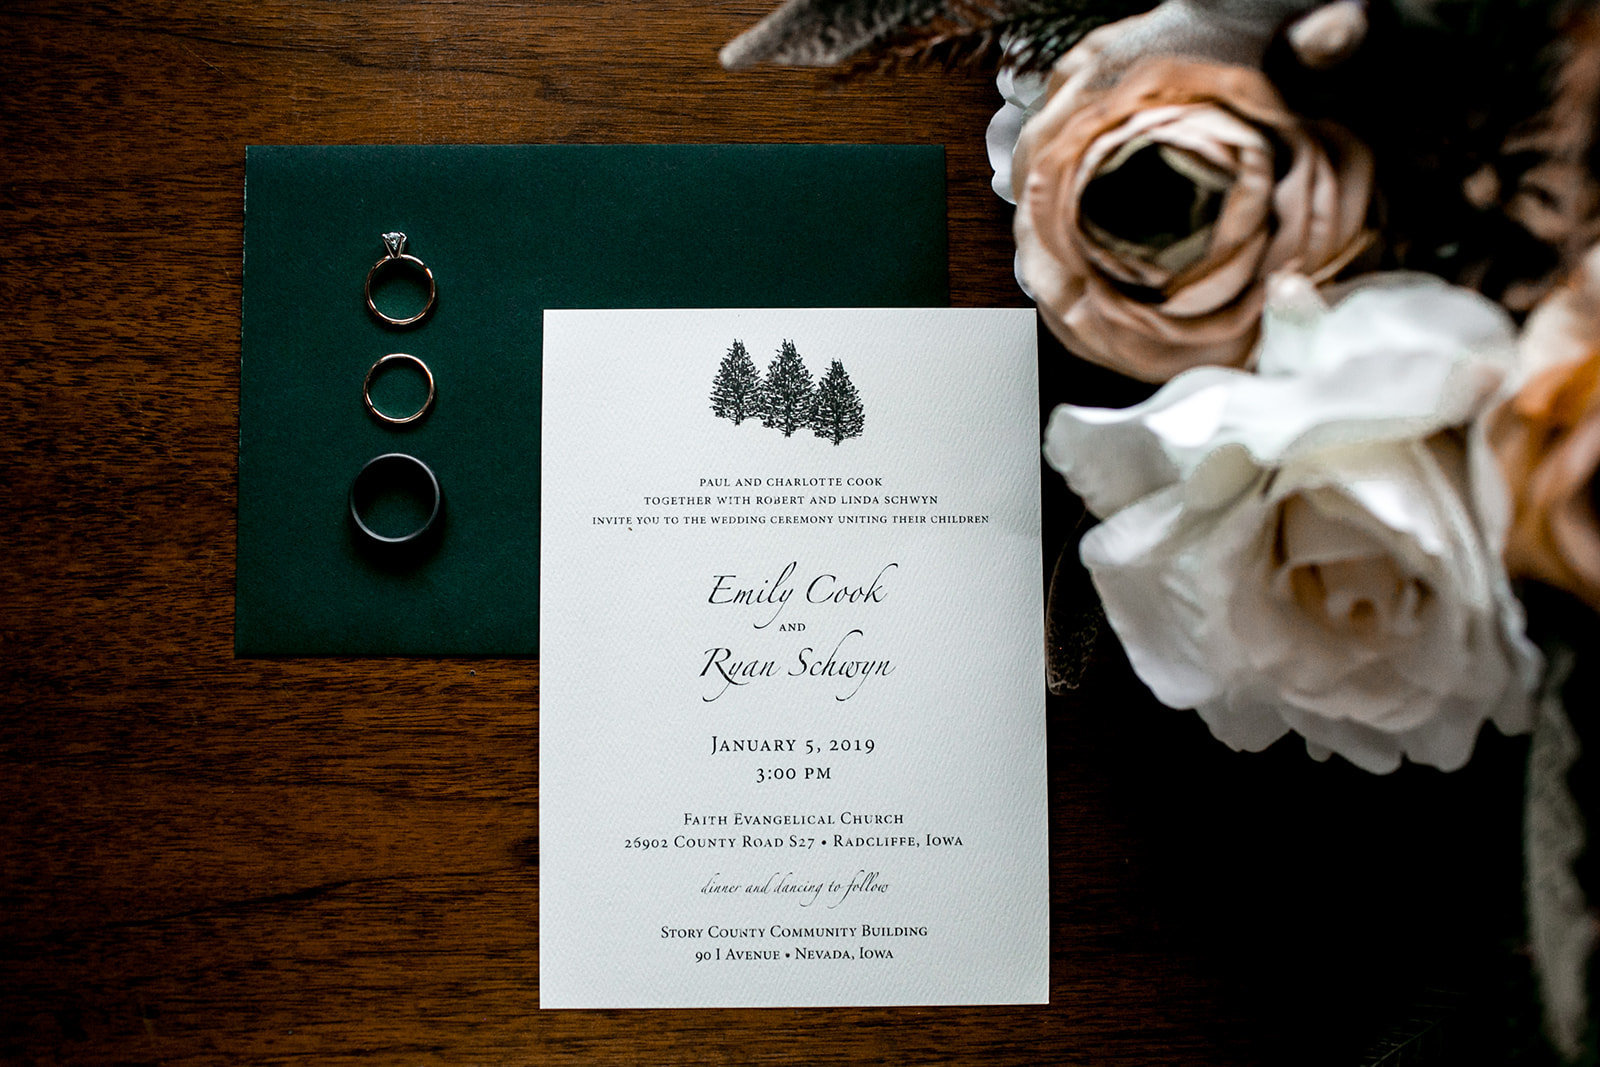 Iowa wedding stationary invitation set.